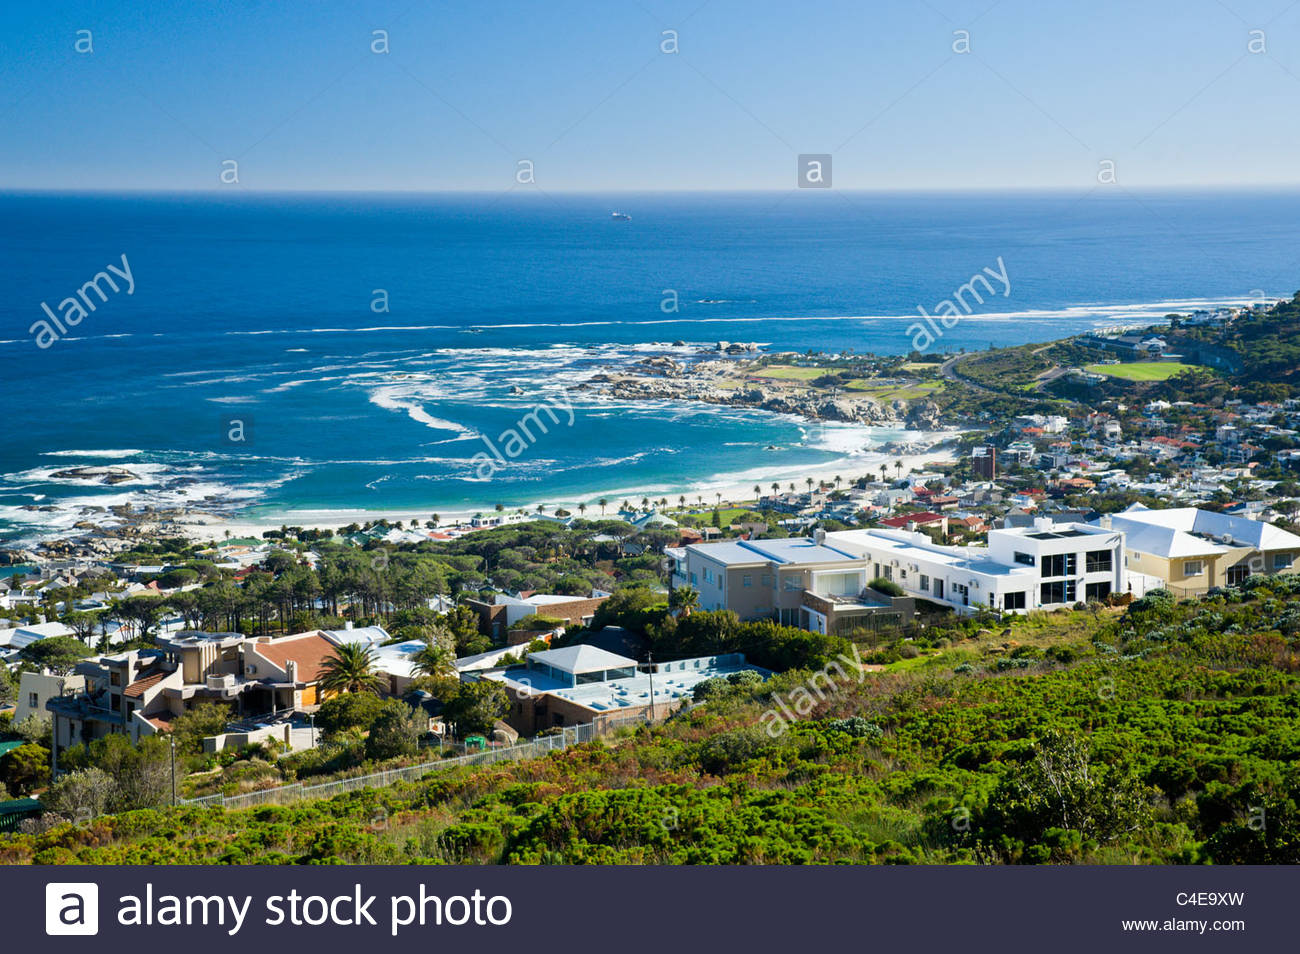 Camps Bay, Cape Town, South Africa - Stock Image